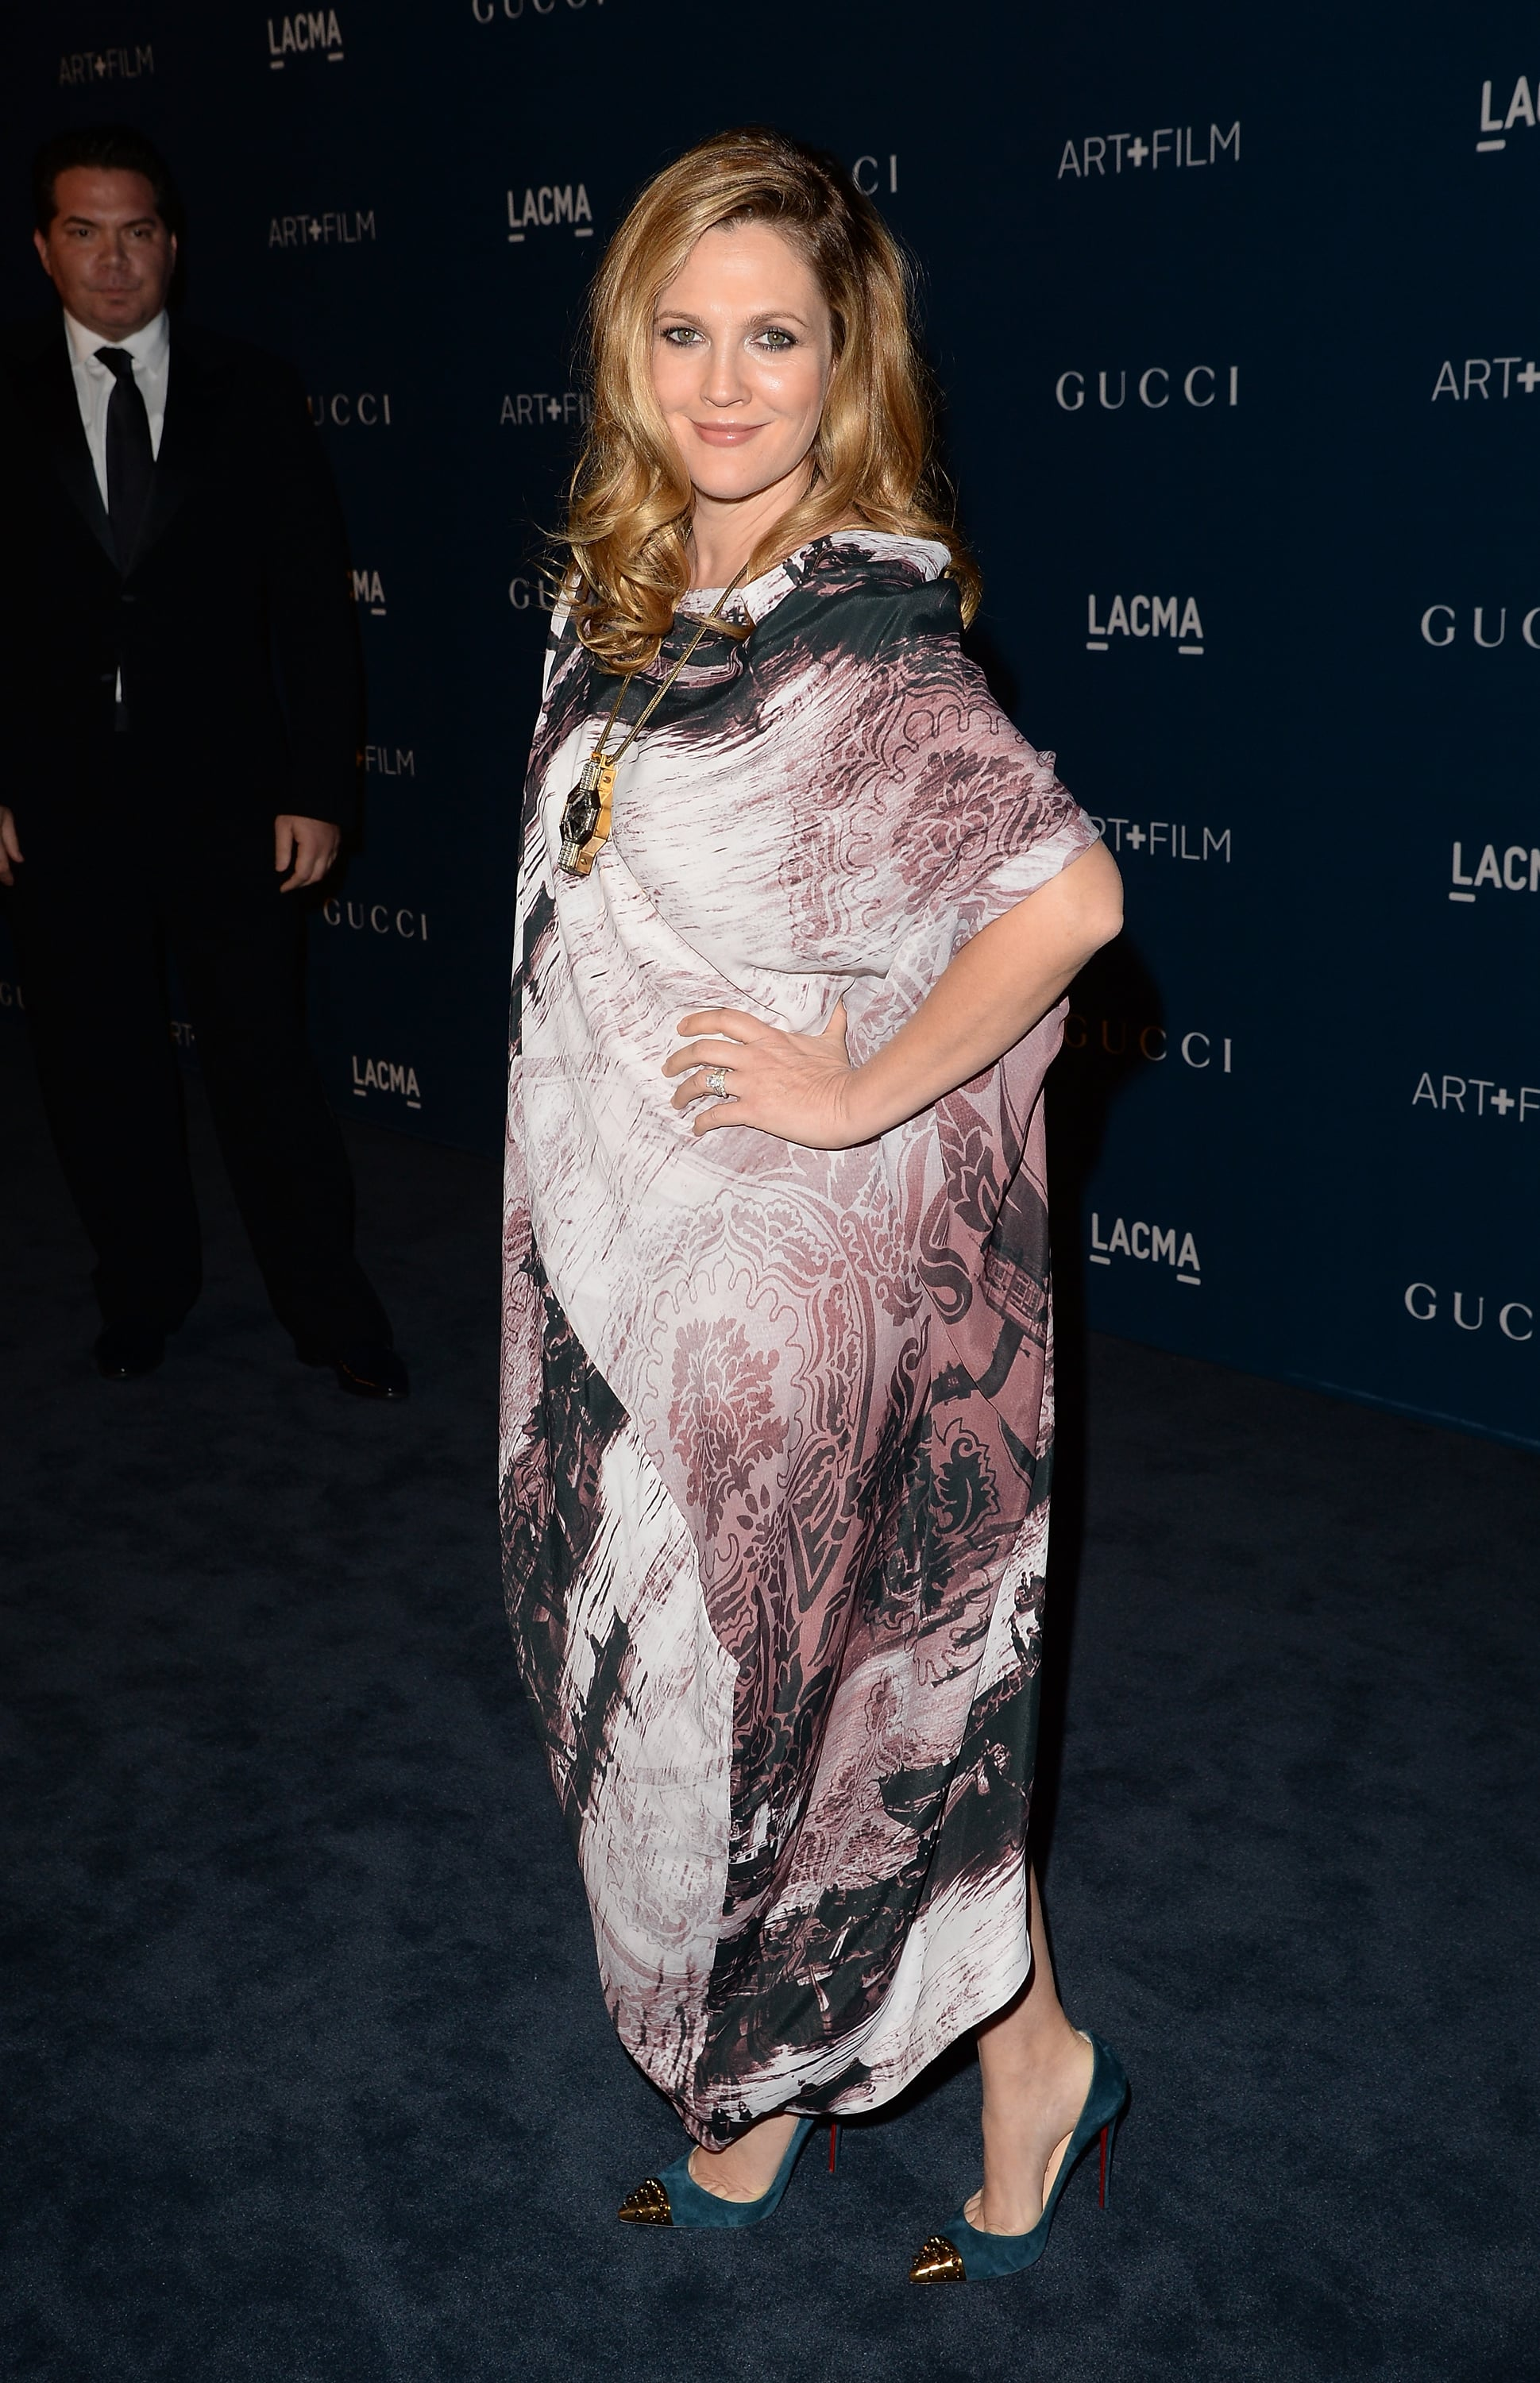 Drew Barrymore at the LACMA Art + Film Gala